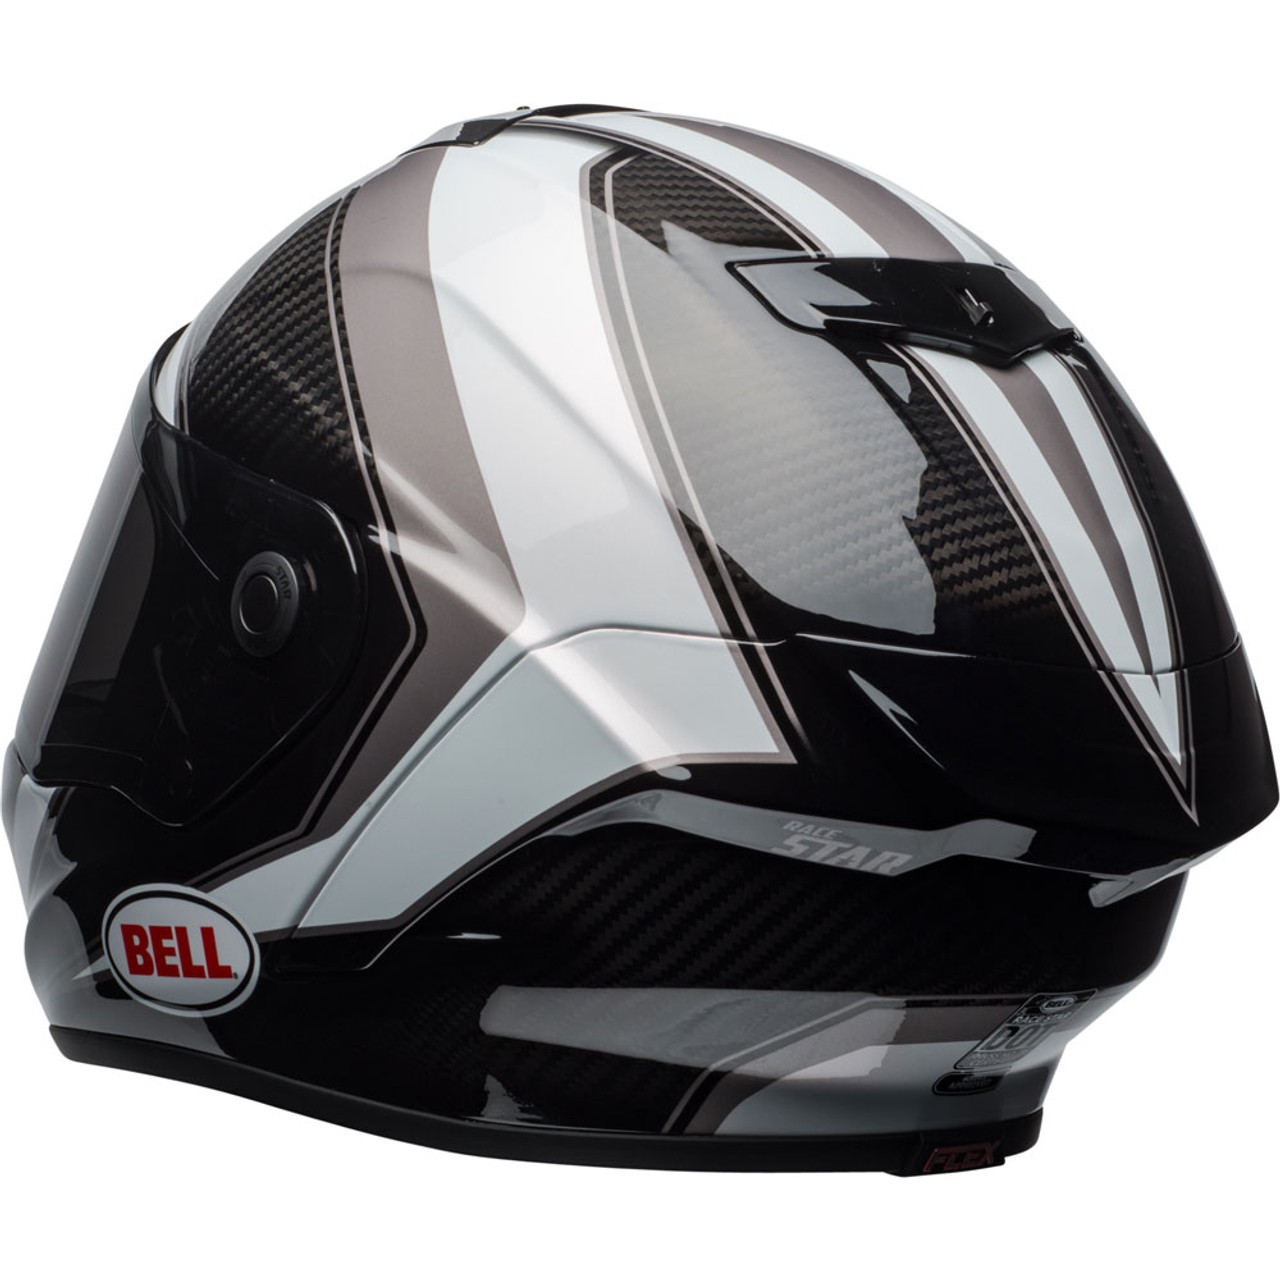 e2f52a82 Bell Race Star Gloss Sector White/Titanium Helmet - Get Lowered Cycles